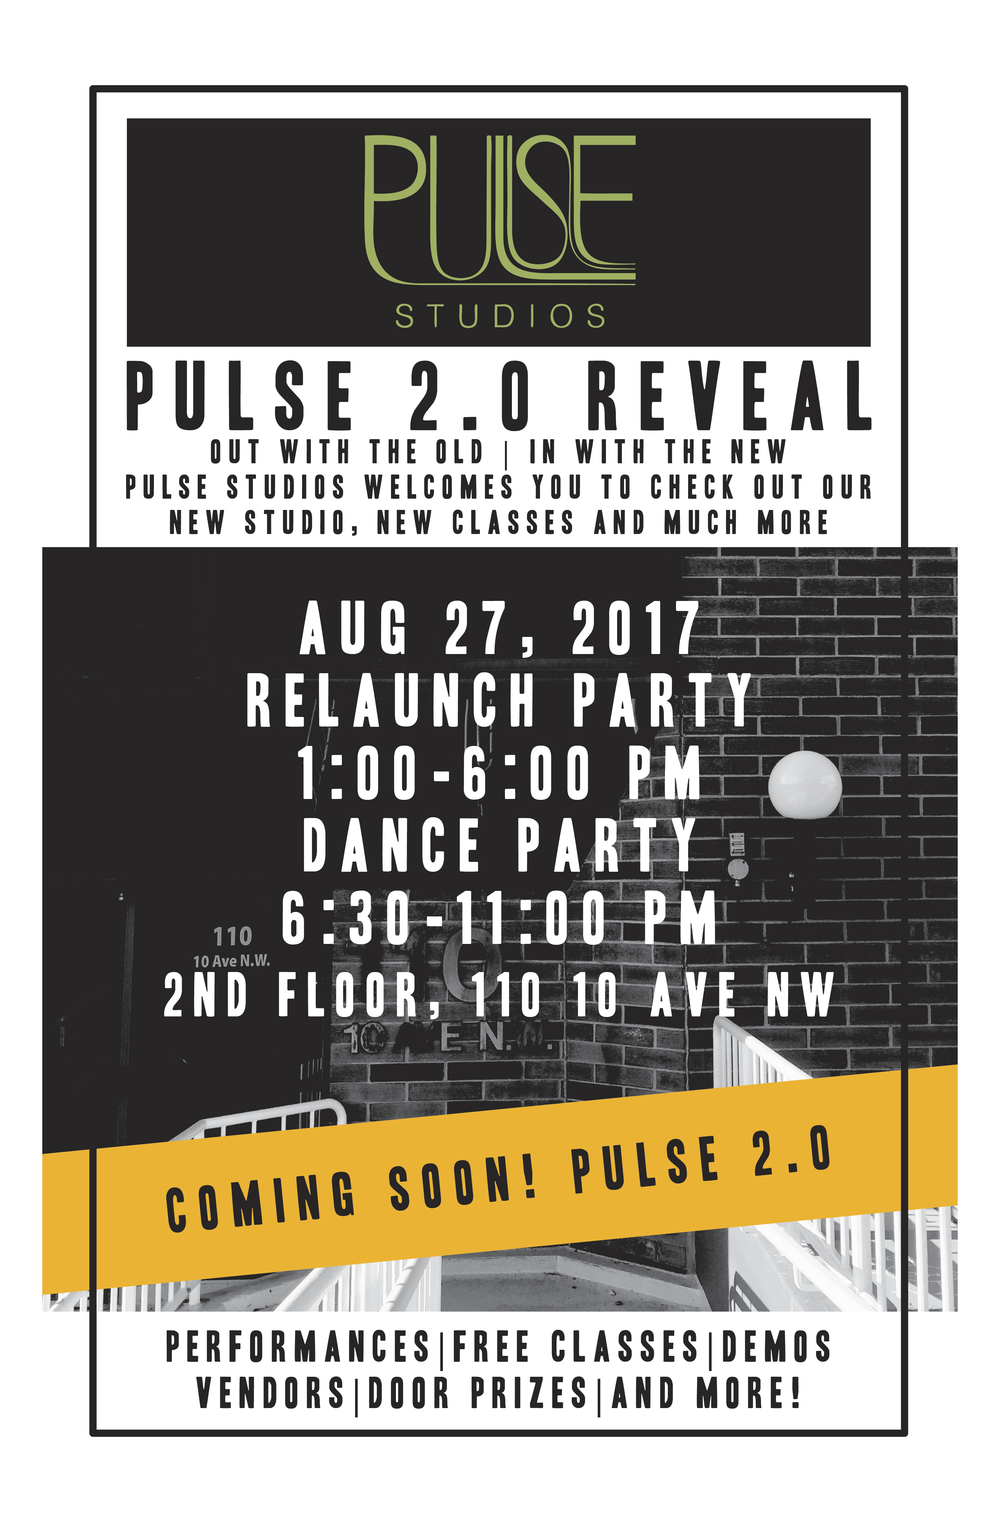 pulse-2.0-reveal-relaunch-party-studios-free-classes-performances